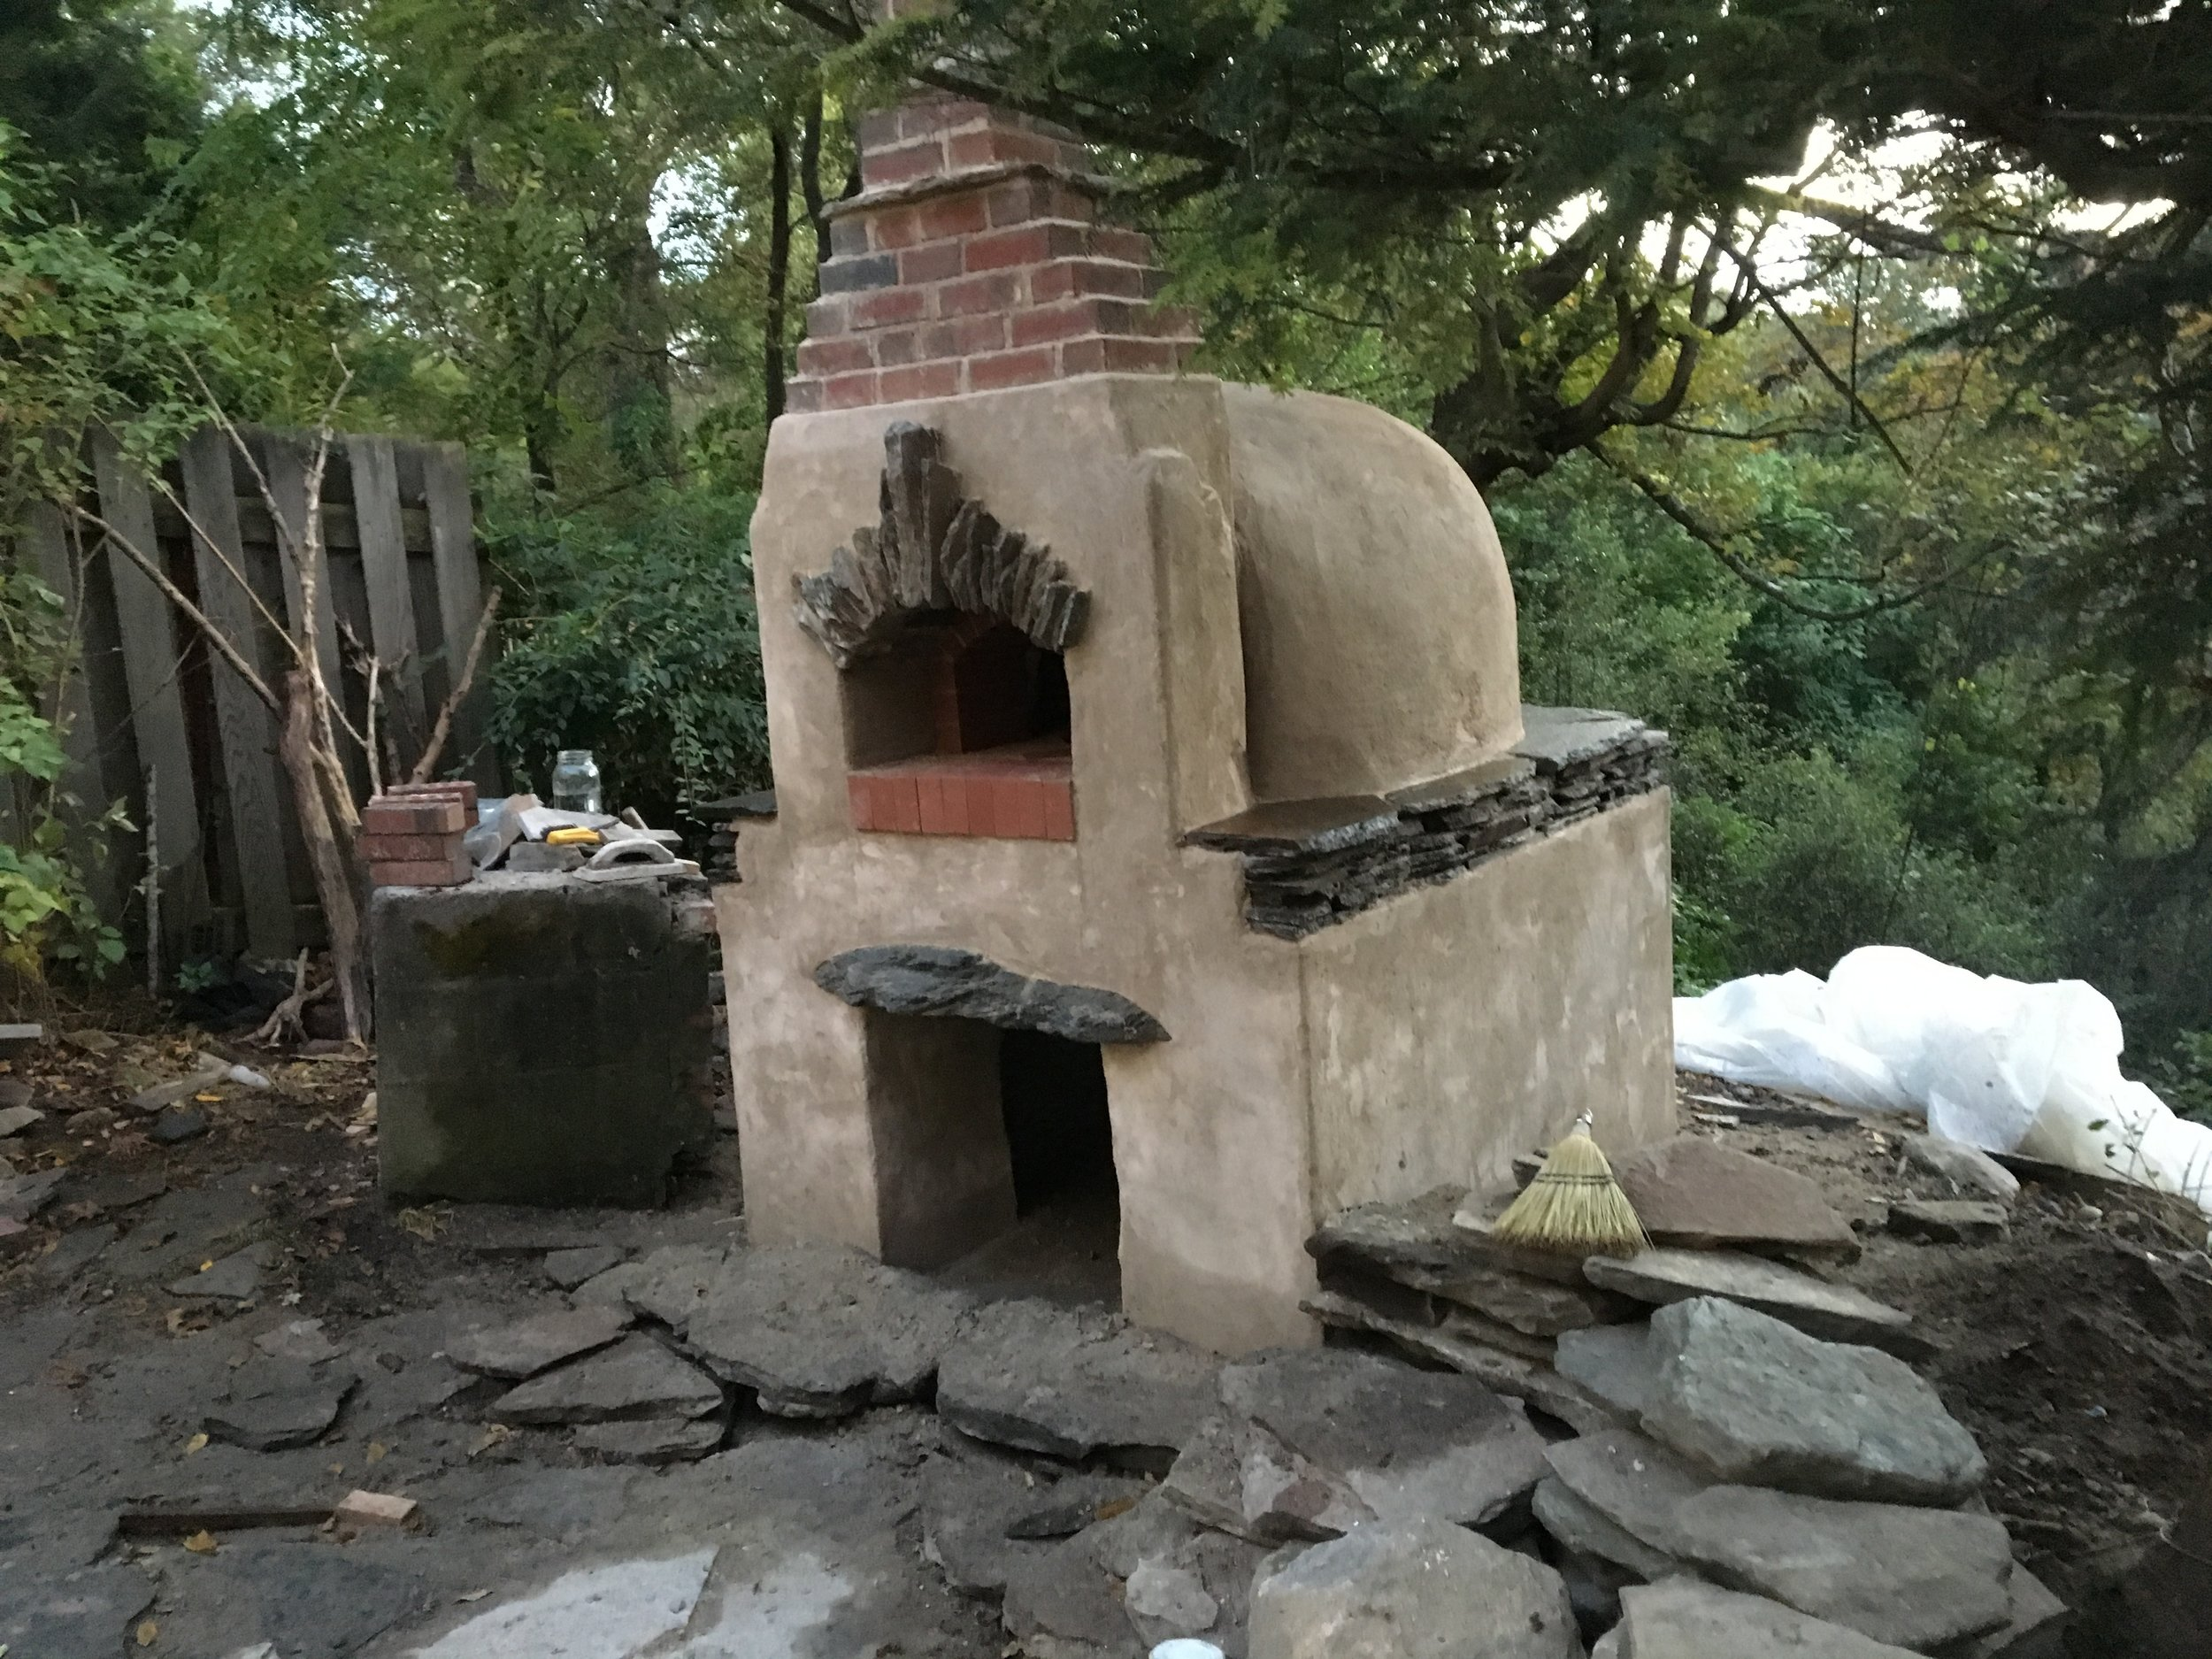 This oven went with cheap, simple plaster that showed off the beautiful stone.